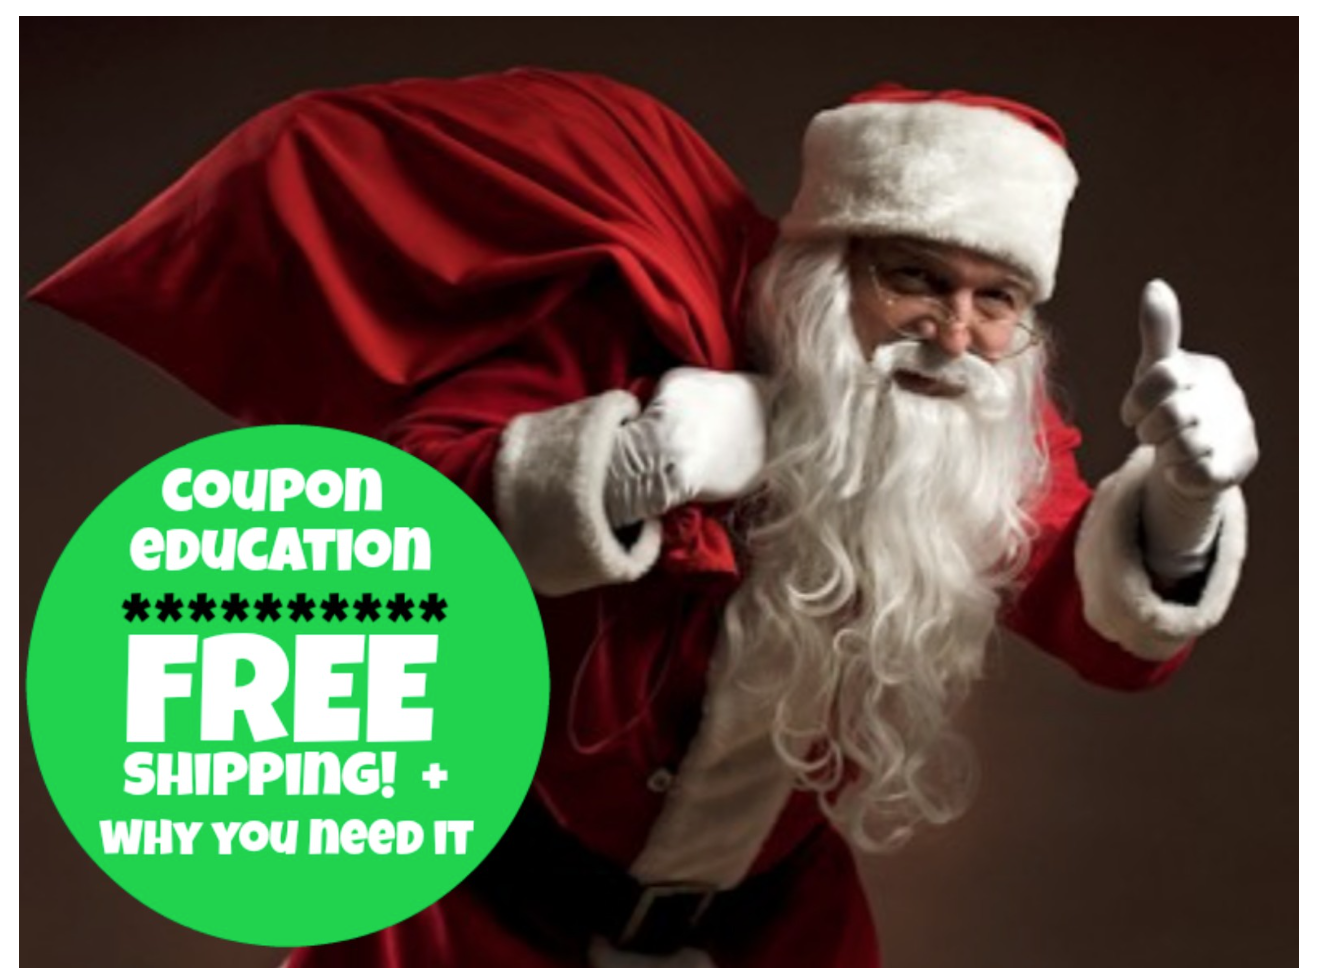 http://www.thebinderladies.com/2014/12/why-signing-up-for-free-2-day-shipping.html